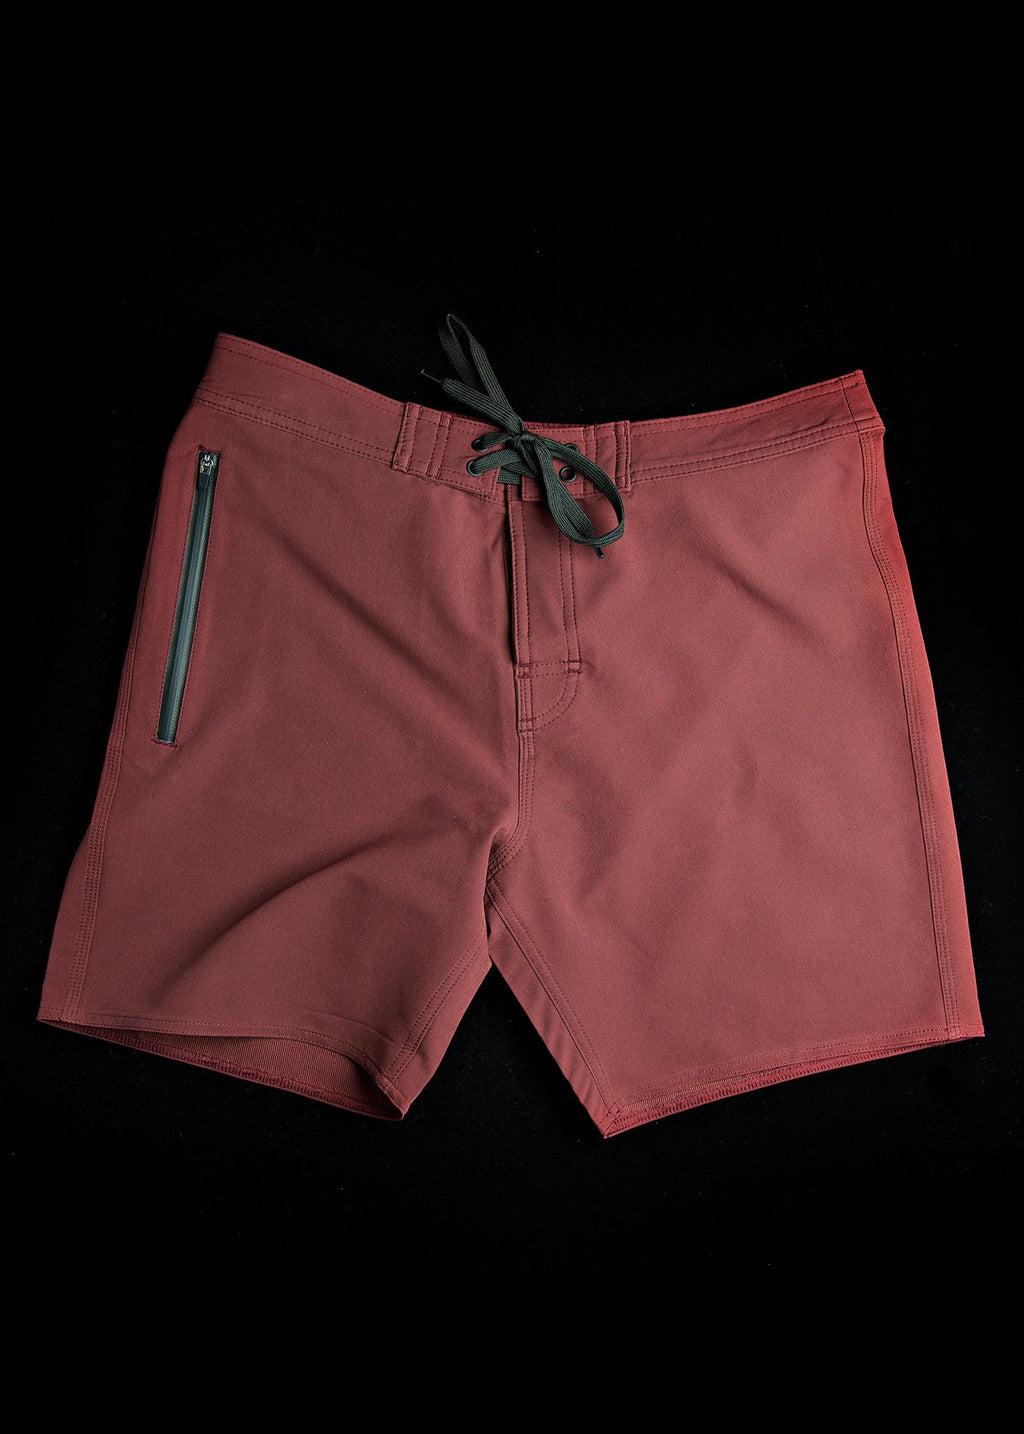 burgundy summer boardshorts by needessntials